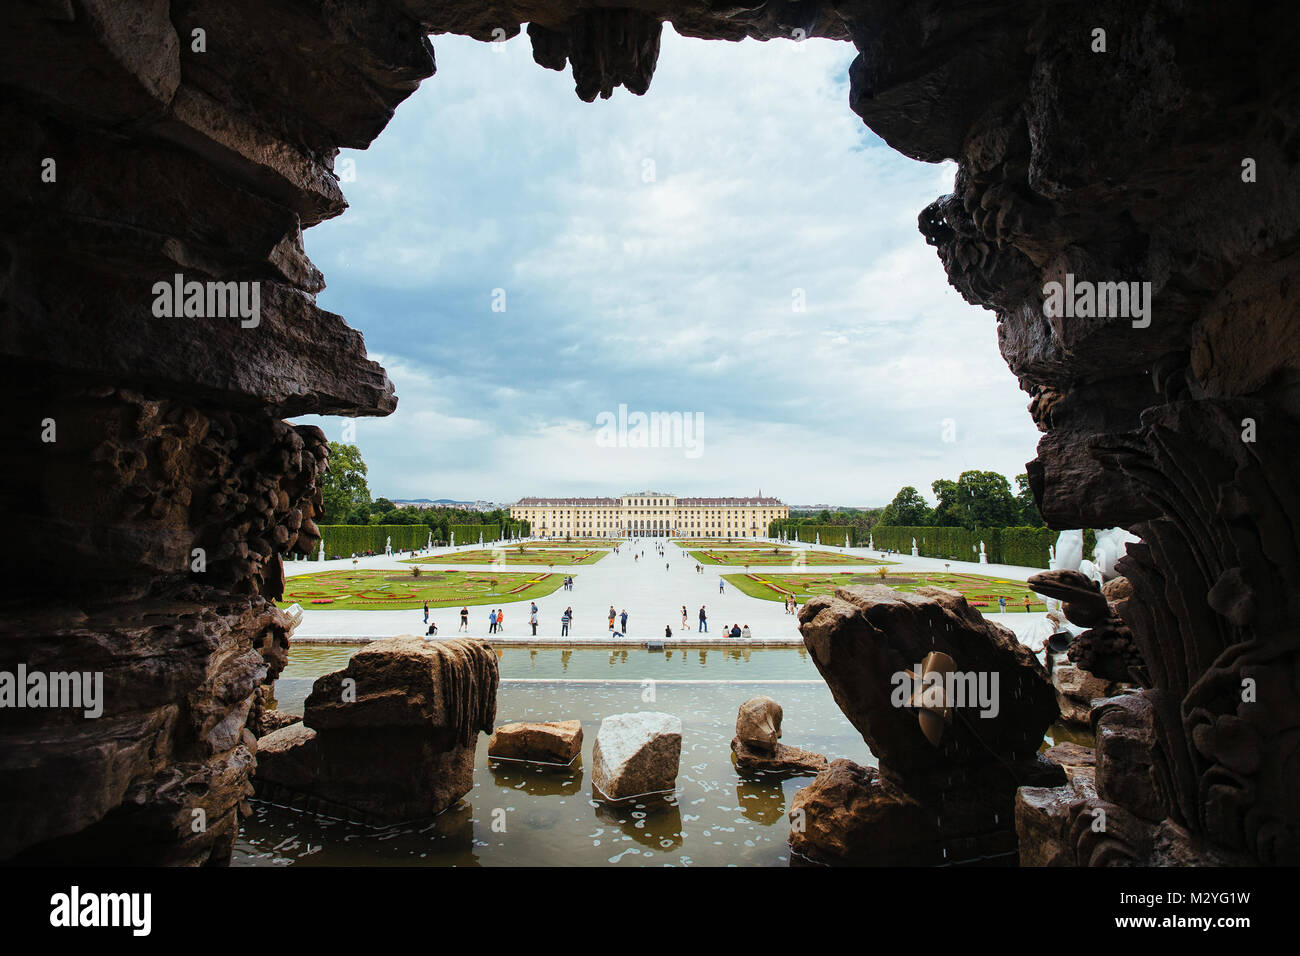 Behind the Neptune Fountain of Schonbrunn Palace, Vienna - Stock Image